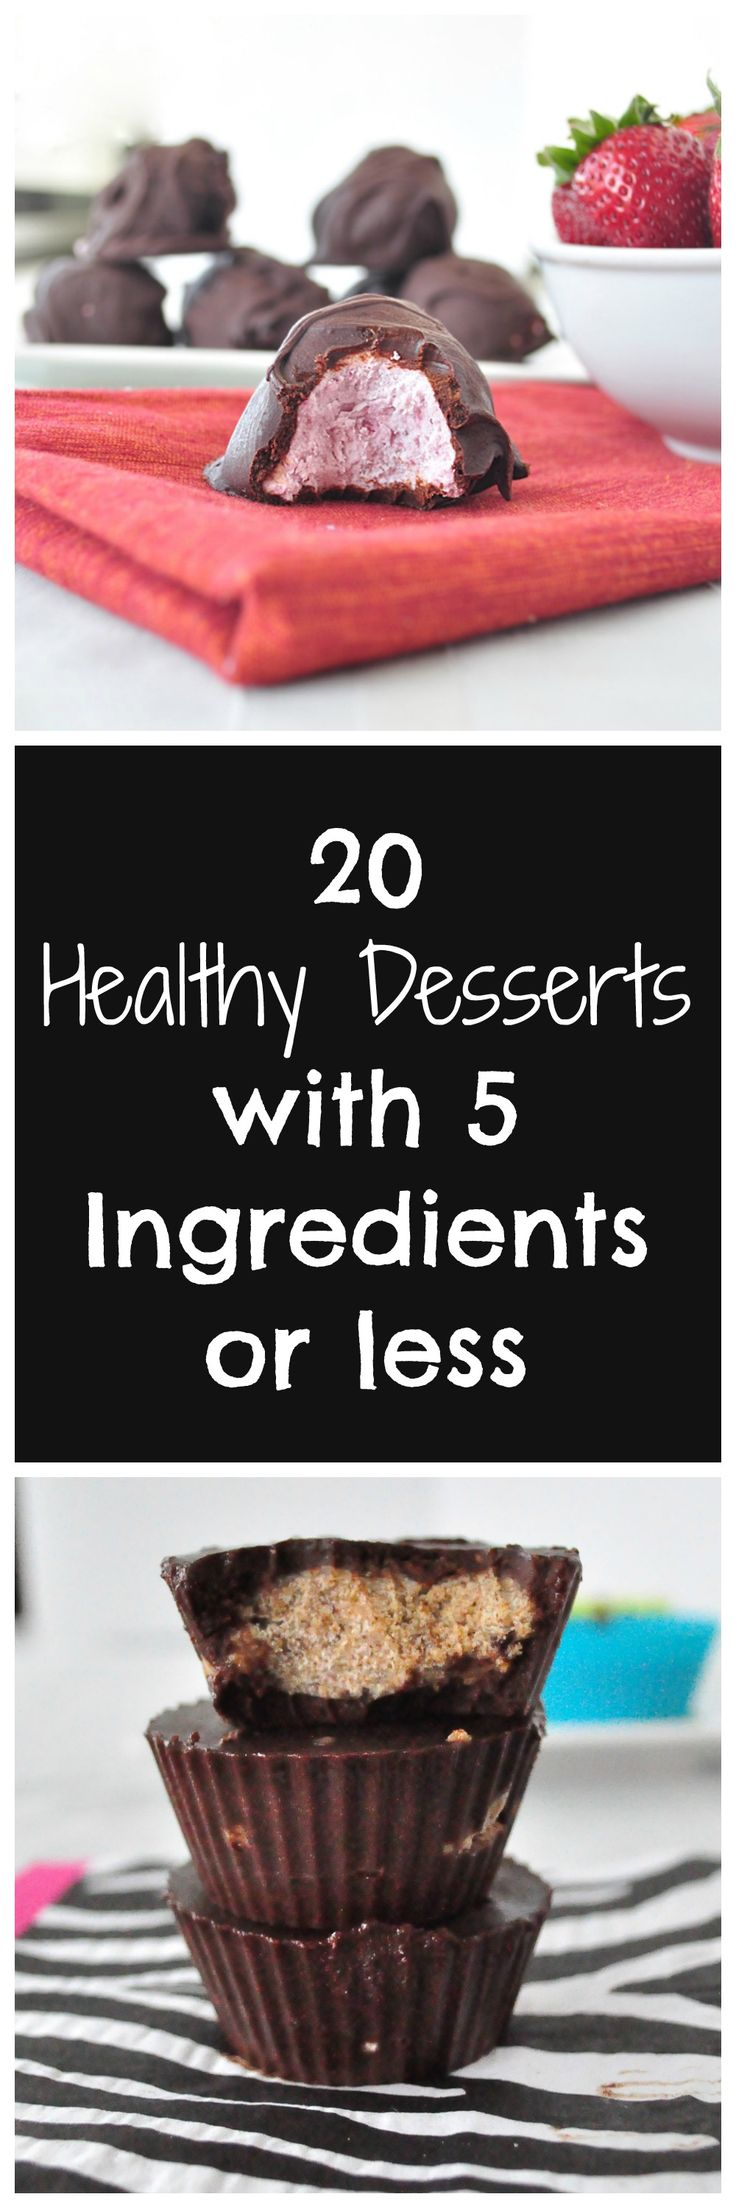 20 Healthy Dessert Recipes with 5 Ingredients or Less. These healthy desserts are sure to satisfy a sweet tooth and they are all easy to make. Pin it for later! #vegan #glutenfree #desserts